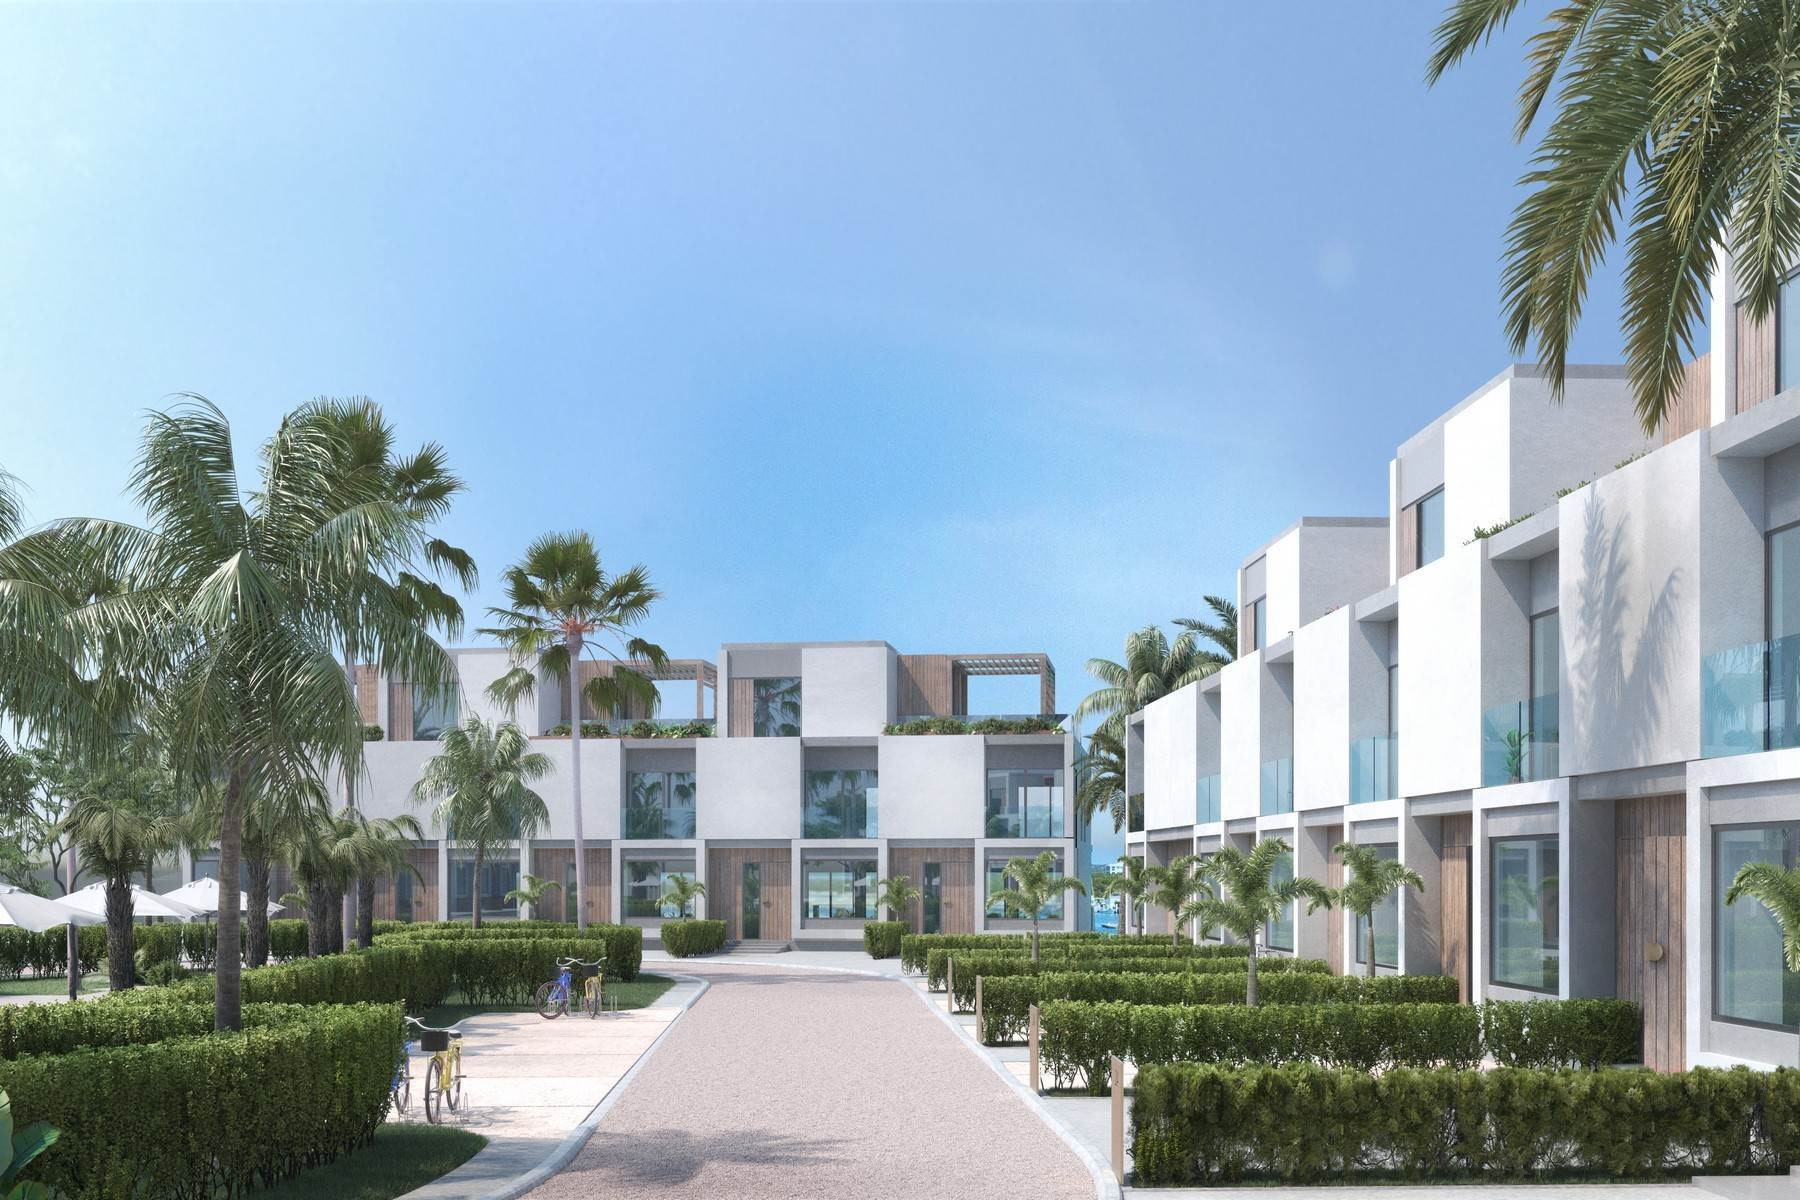 13. townhouses for Sale at SOUTH BANK - BOATHOUSES - TWO BEDROOM - E3 South Bank, Long Bay, Providenciales Turks And Caicos Islands